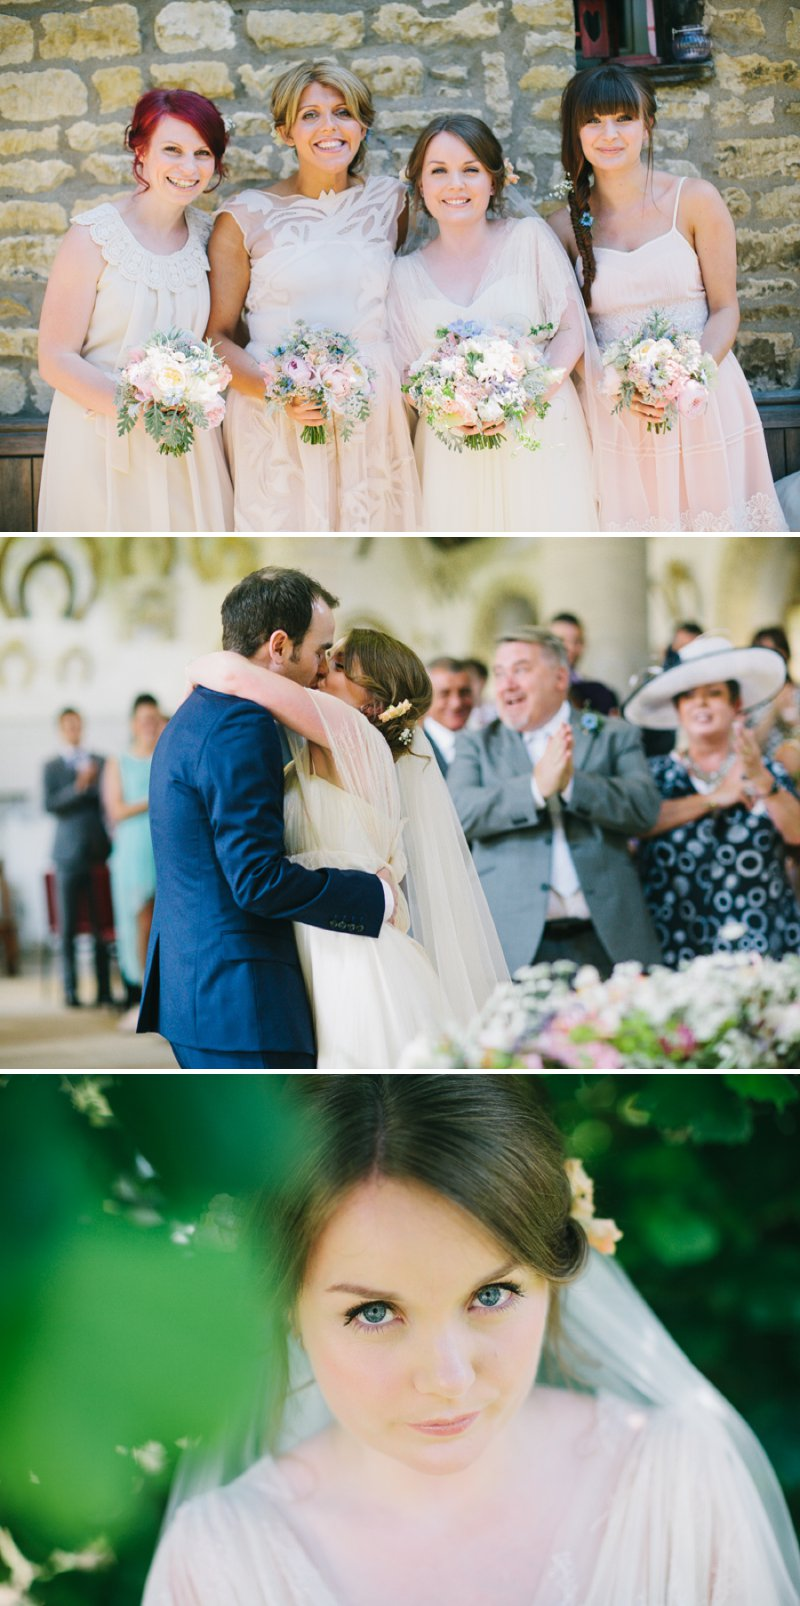 Marquee Wedding With A Pastel Colour Scheme At The Fox And Hounds Inn Rutland With Bride In Bespoke Kula Tsurdiu Gown And Groom In Reiss Suit 1